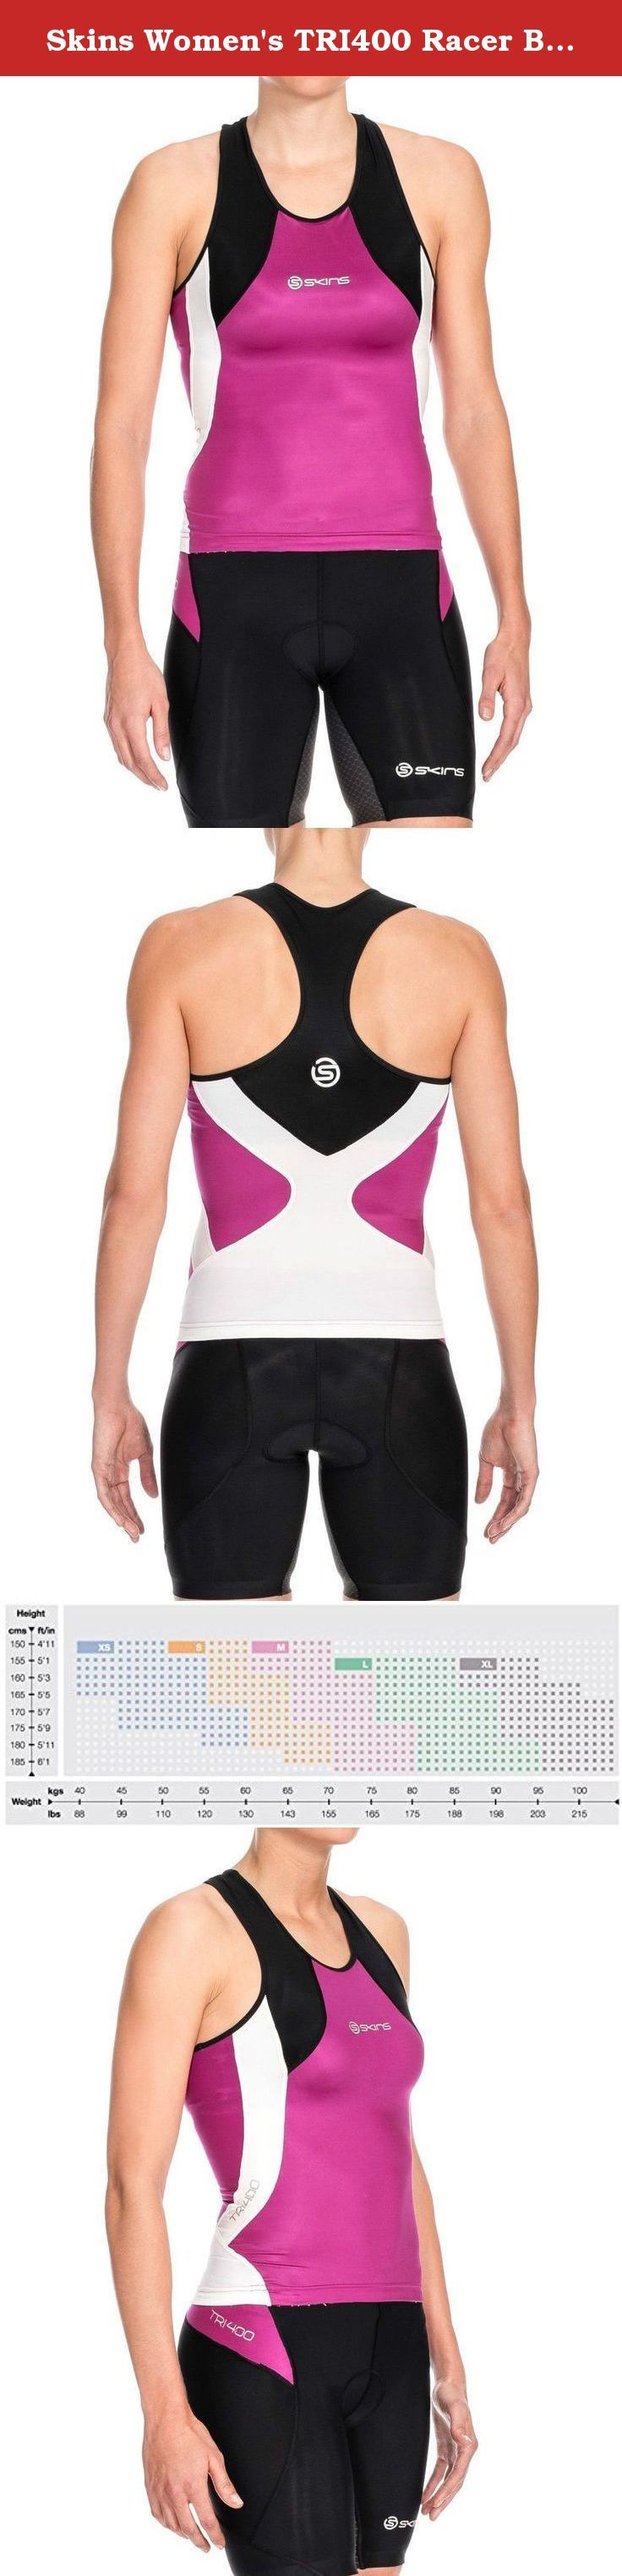 Skins Women's TRI400 Racer Back Top. SKINS TRI400 Women's Compression Racer Back Top features dynamic gradient compression to help accelerate your blood flow to get more oxygen to your active muscles. Based on 400 key fitting points, the SKINS TRI400 range is cut for comfort while swimming, cycling and running. Strategically placed panels of TRI400 fabric on the front of the top minimize drag and aid performance in the water. Memory MX Fabric panels in the back of the top provide targeted...